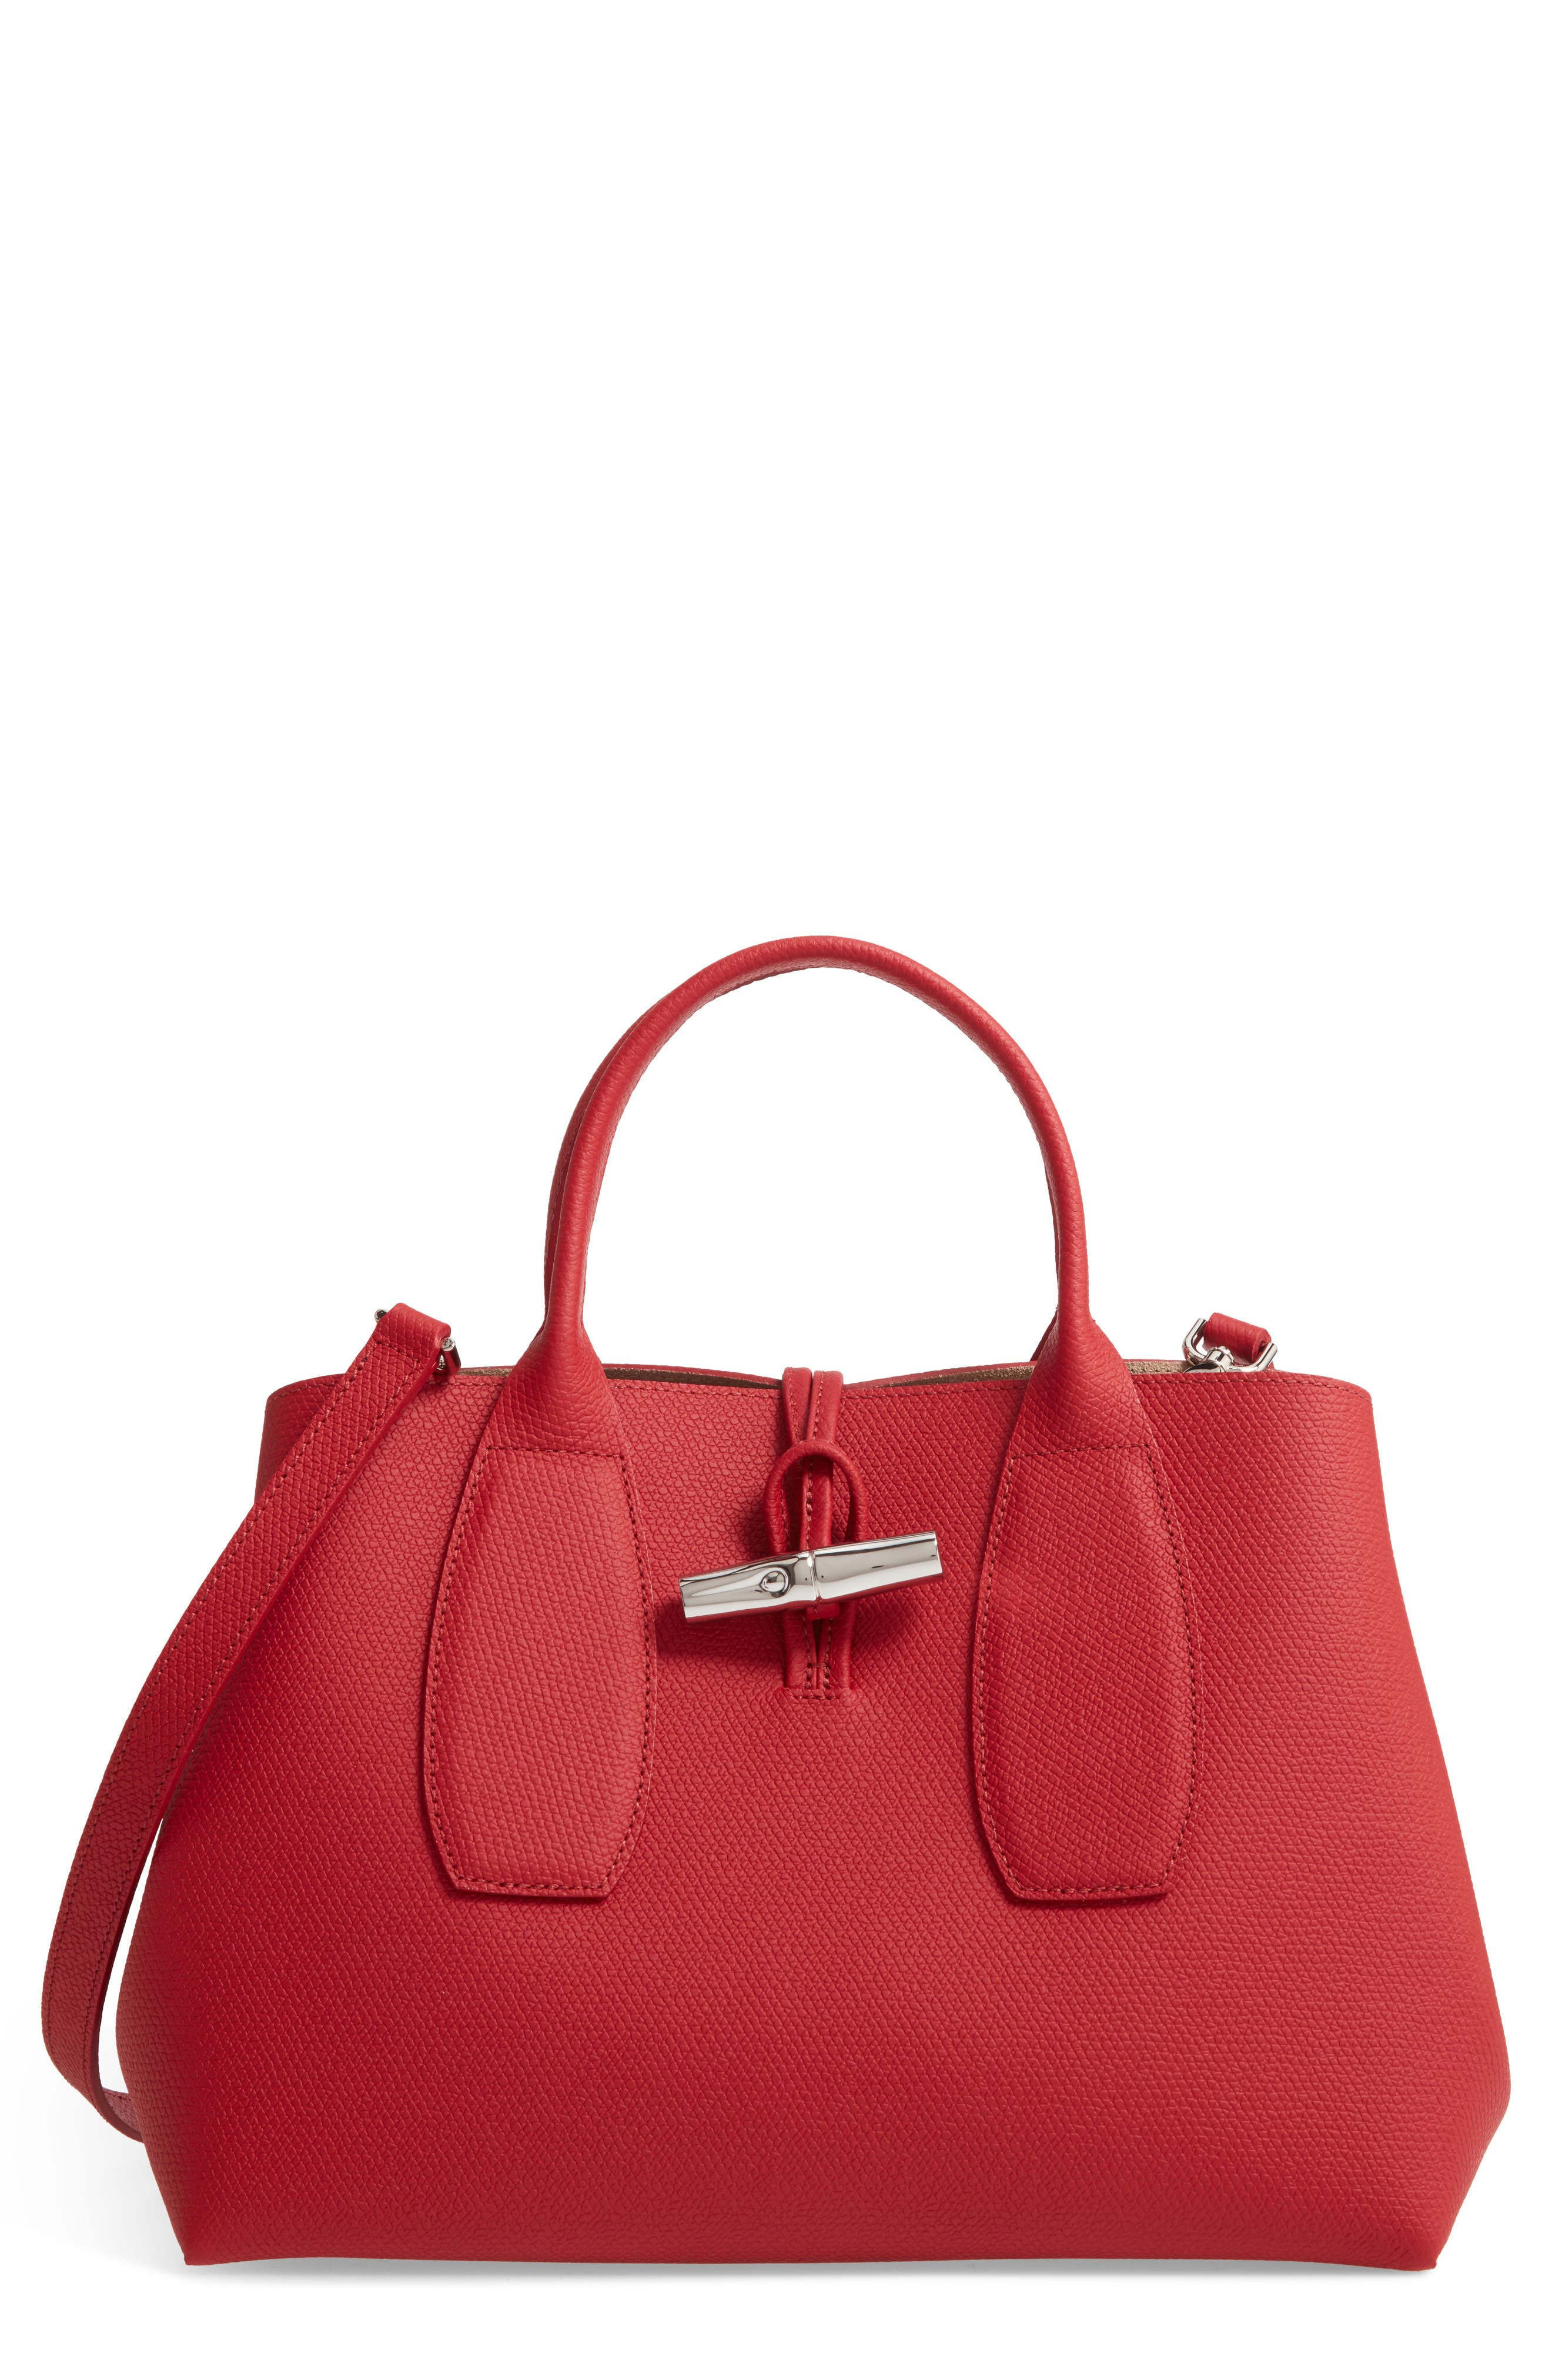 Richly pebbled leather textures a roomy tote fitted with snap gussets so you can size it to accommodate everything you need for an outing. The top handles are the perfect length for carrying by hand or slinging over a shoulder. Style Name: Longchamp Medium Roseau Leather Tote. Style Number: 5947230. Available in stores.